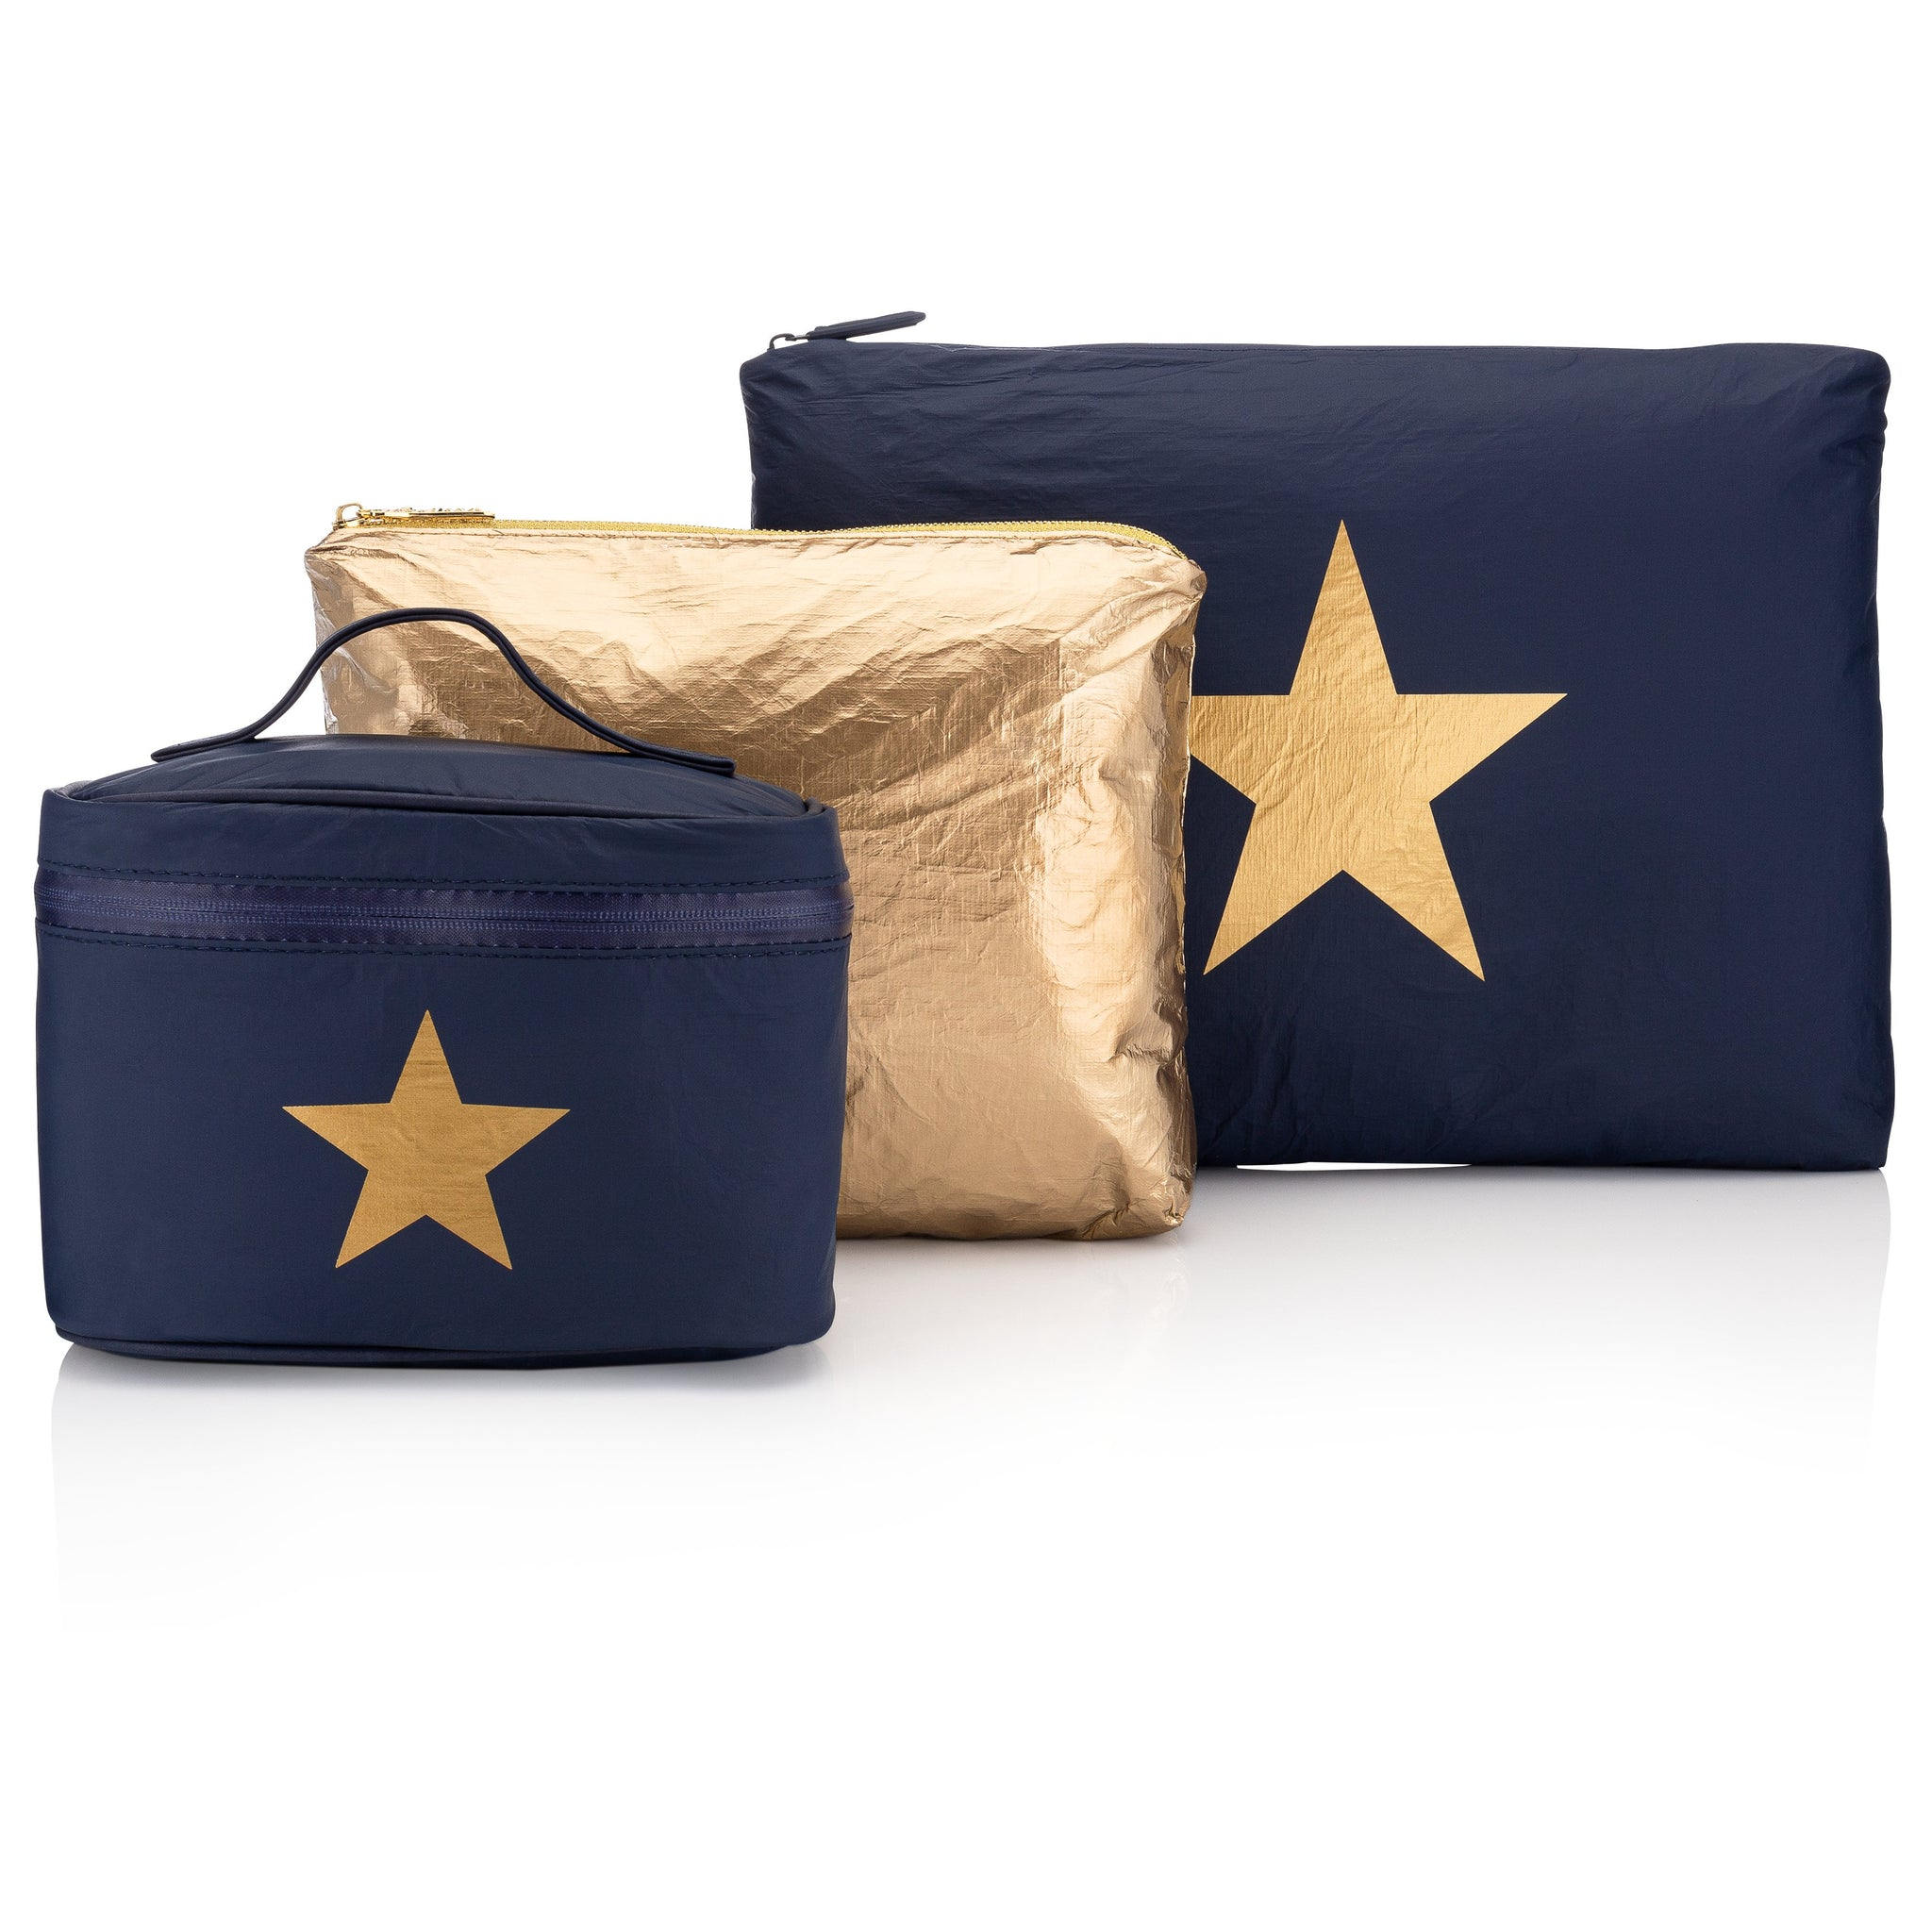 Navy and Gold Travel Bag Set